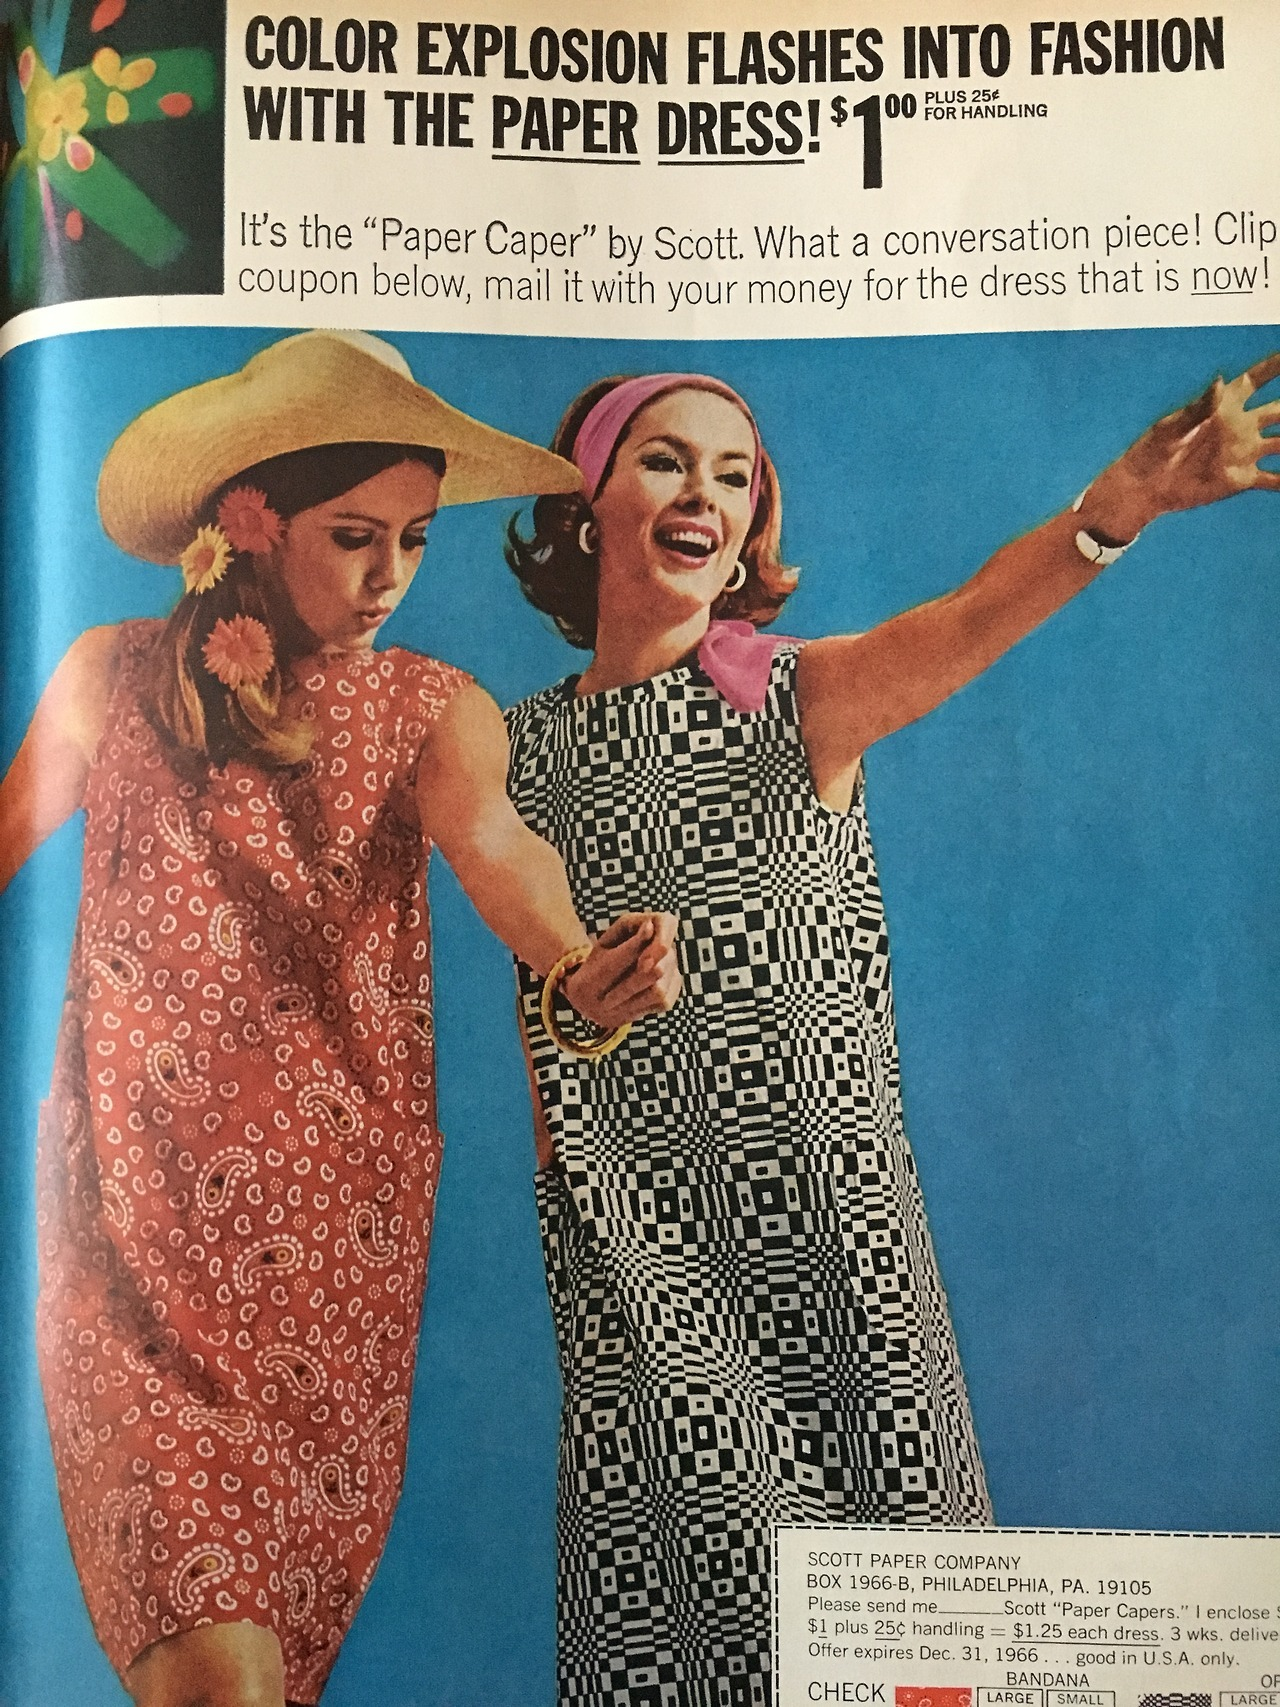 """Color Explosion Flashes Into Fashion With The Paper Dress!  Scott Paper. Better Homes and Gardens. June 1966.  The ad that started the paper dress fad was originally intended as a limited run marketing campaign by Scott Paper to advertise its new printed paper products. They didn't realize how popular this would be, and orders for 500,000 dresses came pouring in. Once the orders were fulfilled, Scott pulled the plug on the campaign, but many other companies decided to fill the void, as demand for the disposable dresses that were designed to""""make you the conversation piece at parties"""" was high. Paper clothes were not entirely made of paper, there was usually some kind of nylon in the mix, which meant that the dresses wouldn't just fall apart during regular wear. Like all fads, this paper clothing trend would be short-lived once the novelty wore off."""